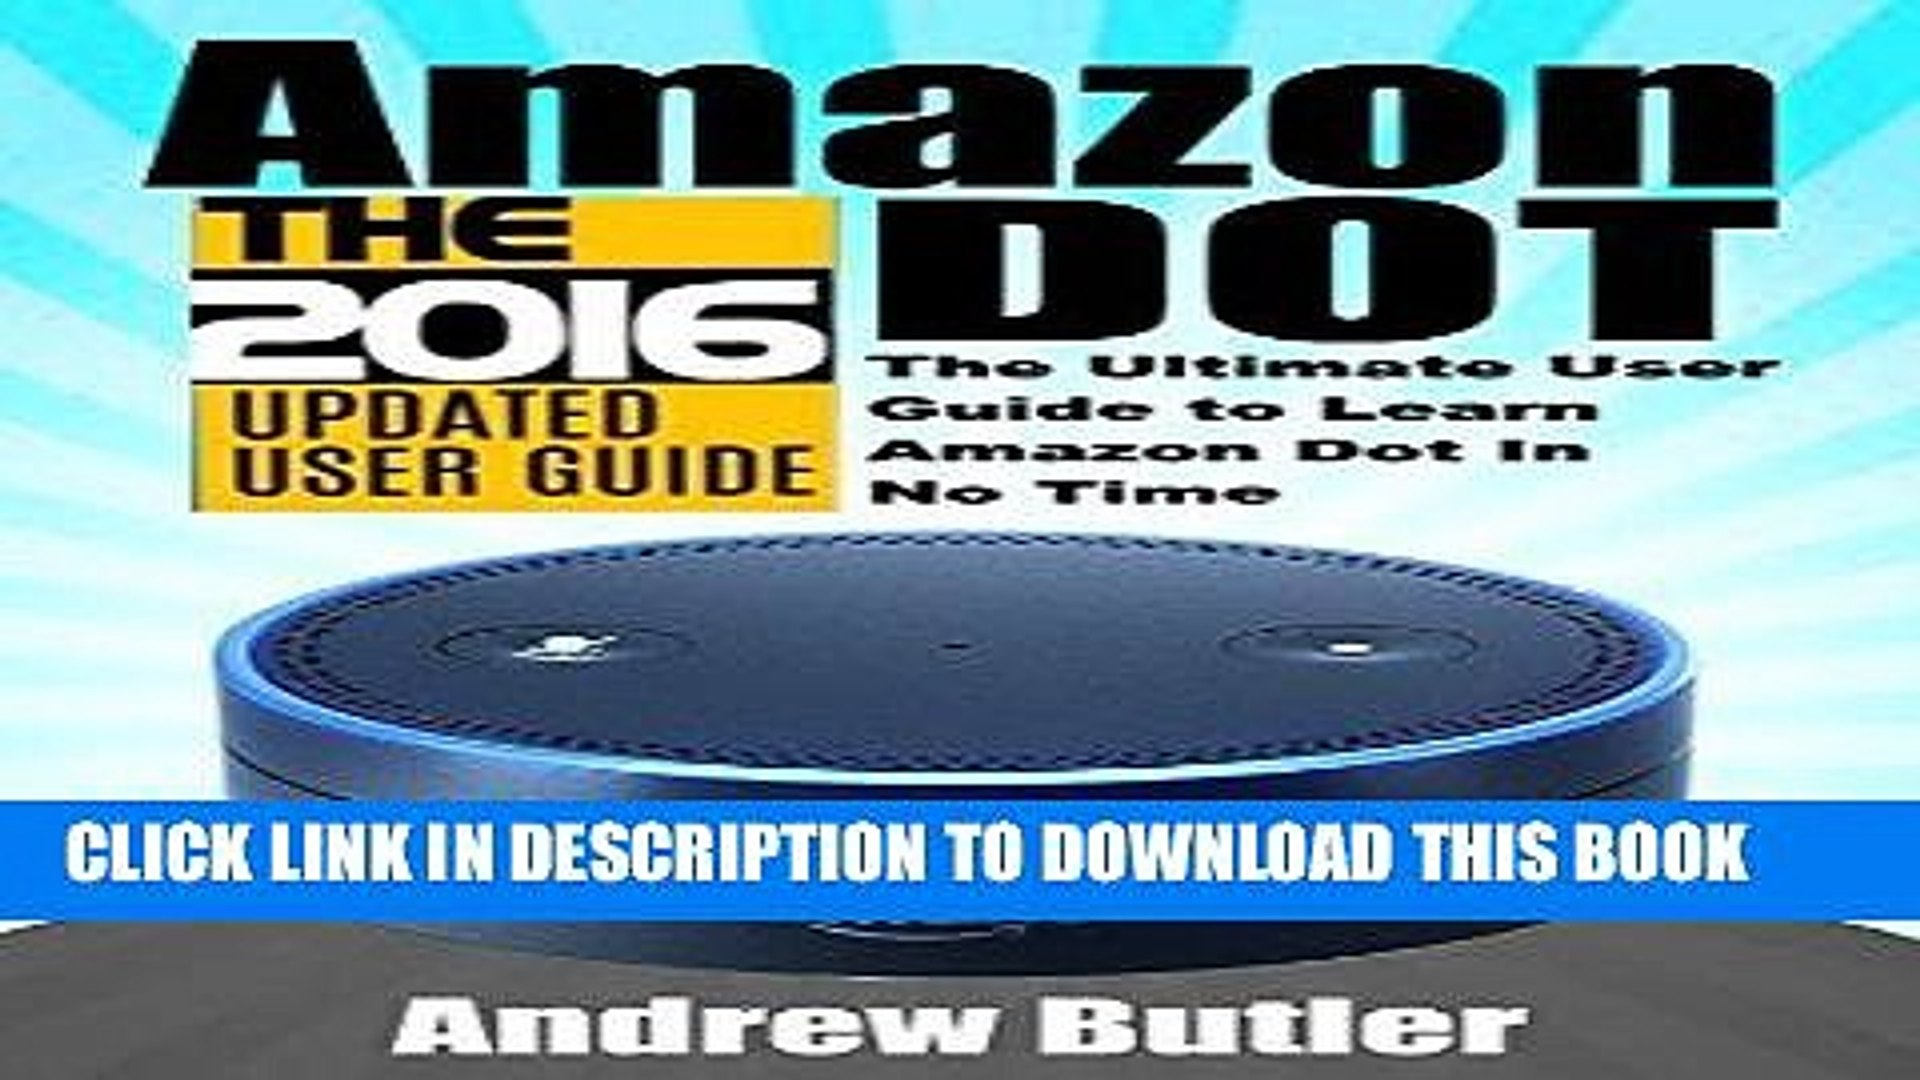 Best Seller Amazon Echo: Dot: The Ultimate User Guide to Learn Amazon Dot In No Time (Amazon Echo